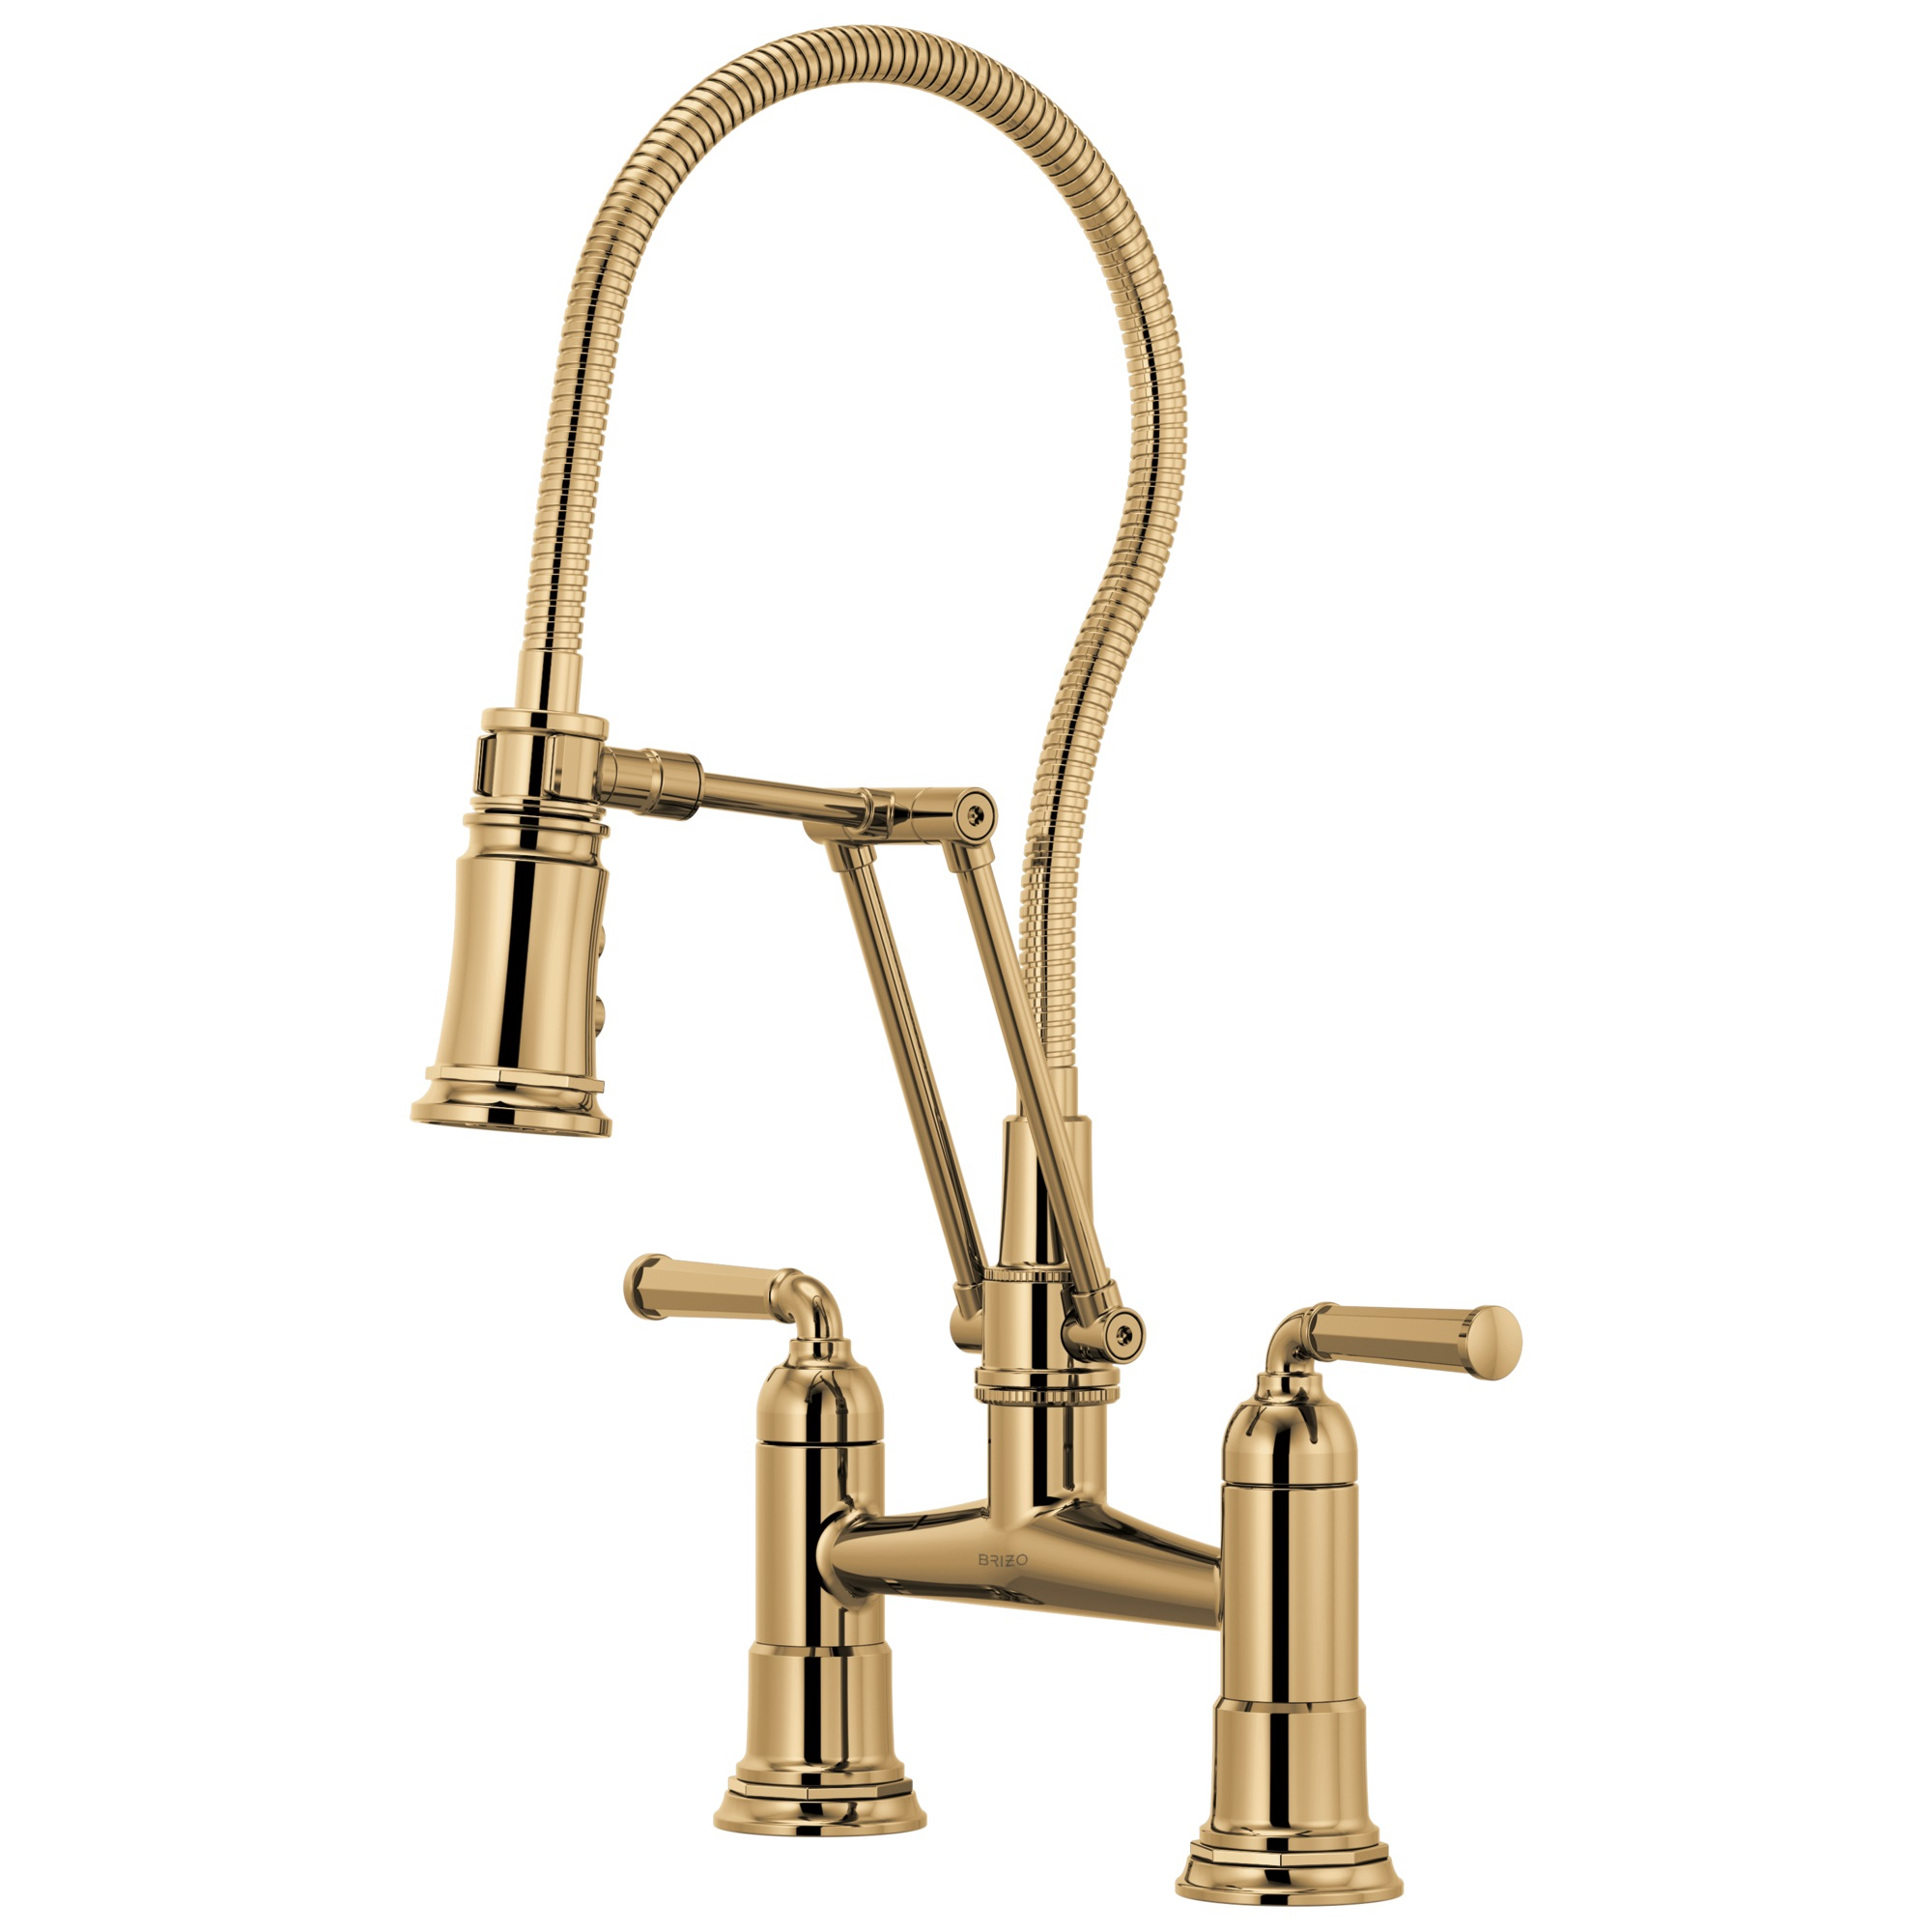 Brizo 62174LF-PG Rook Articulating Bridge Faucet with Finished Hose - Polished Gold